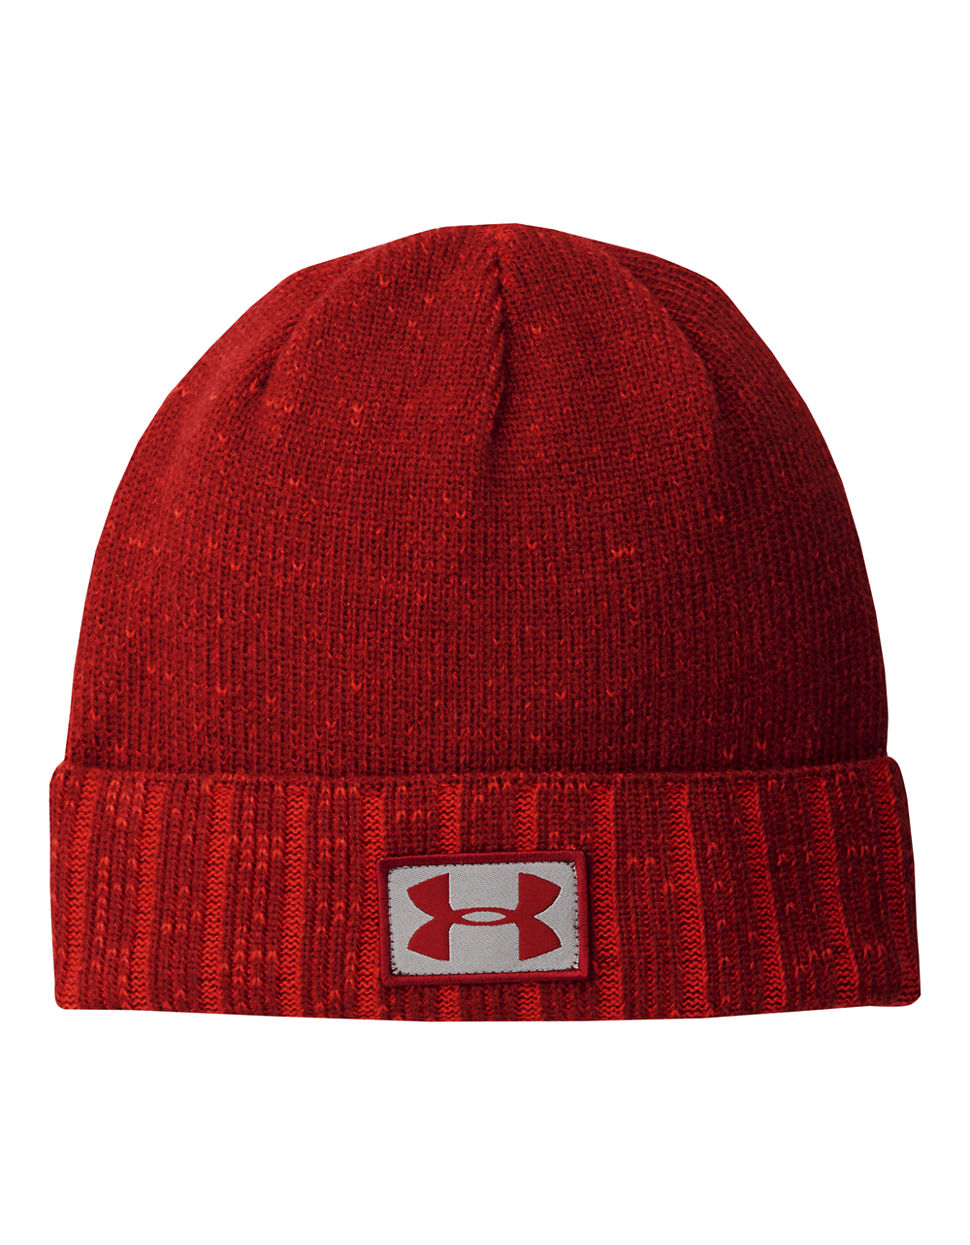 e12644bf5ea Lyst - Under Armour Coldgear Infrared Cuff Beanie in Red for Men